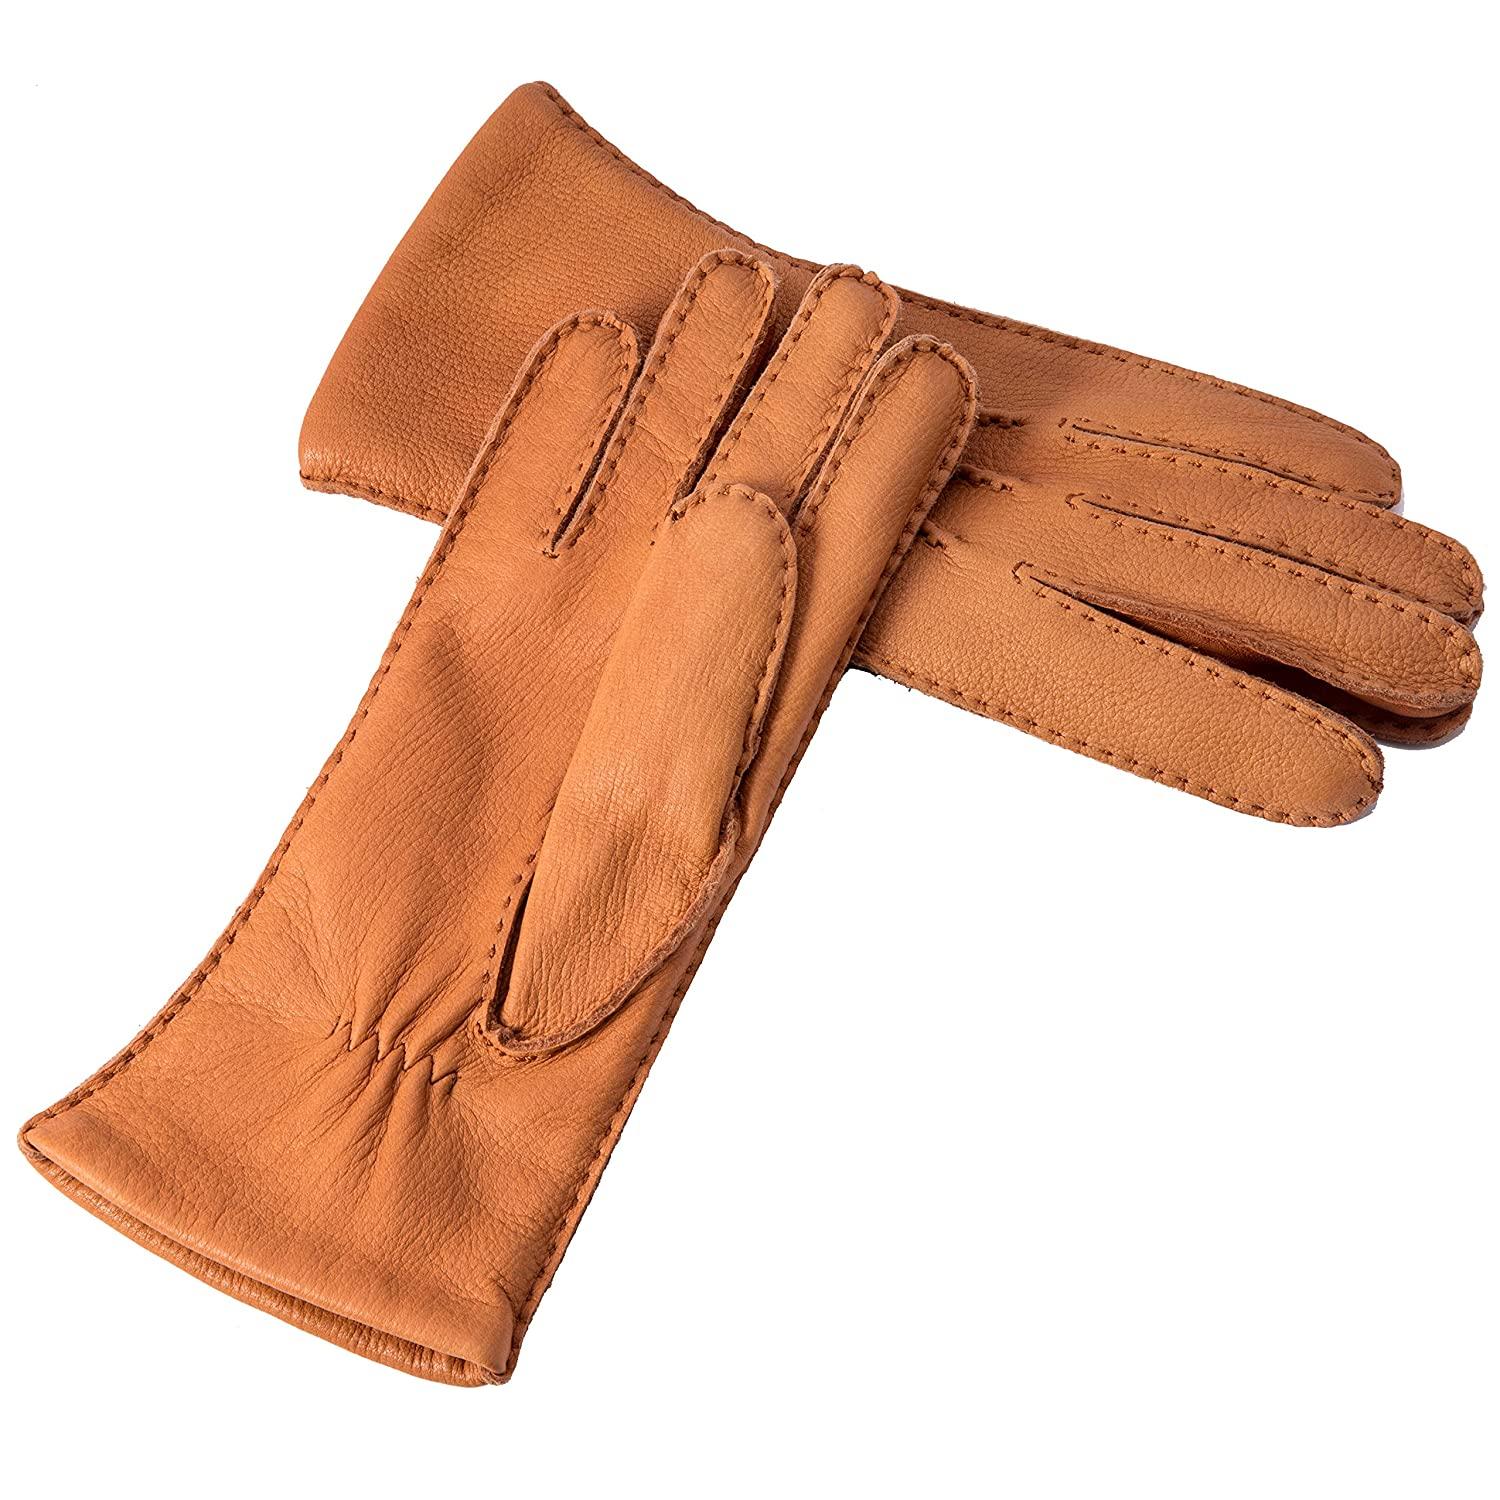 0efe54e3e972b 100% A-CLASS DEERSKIN LEATHER - Before you make a purchase with your  hard-earned money